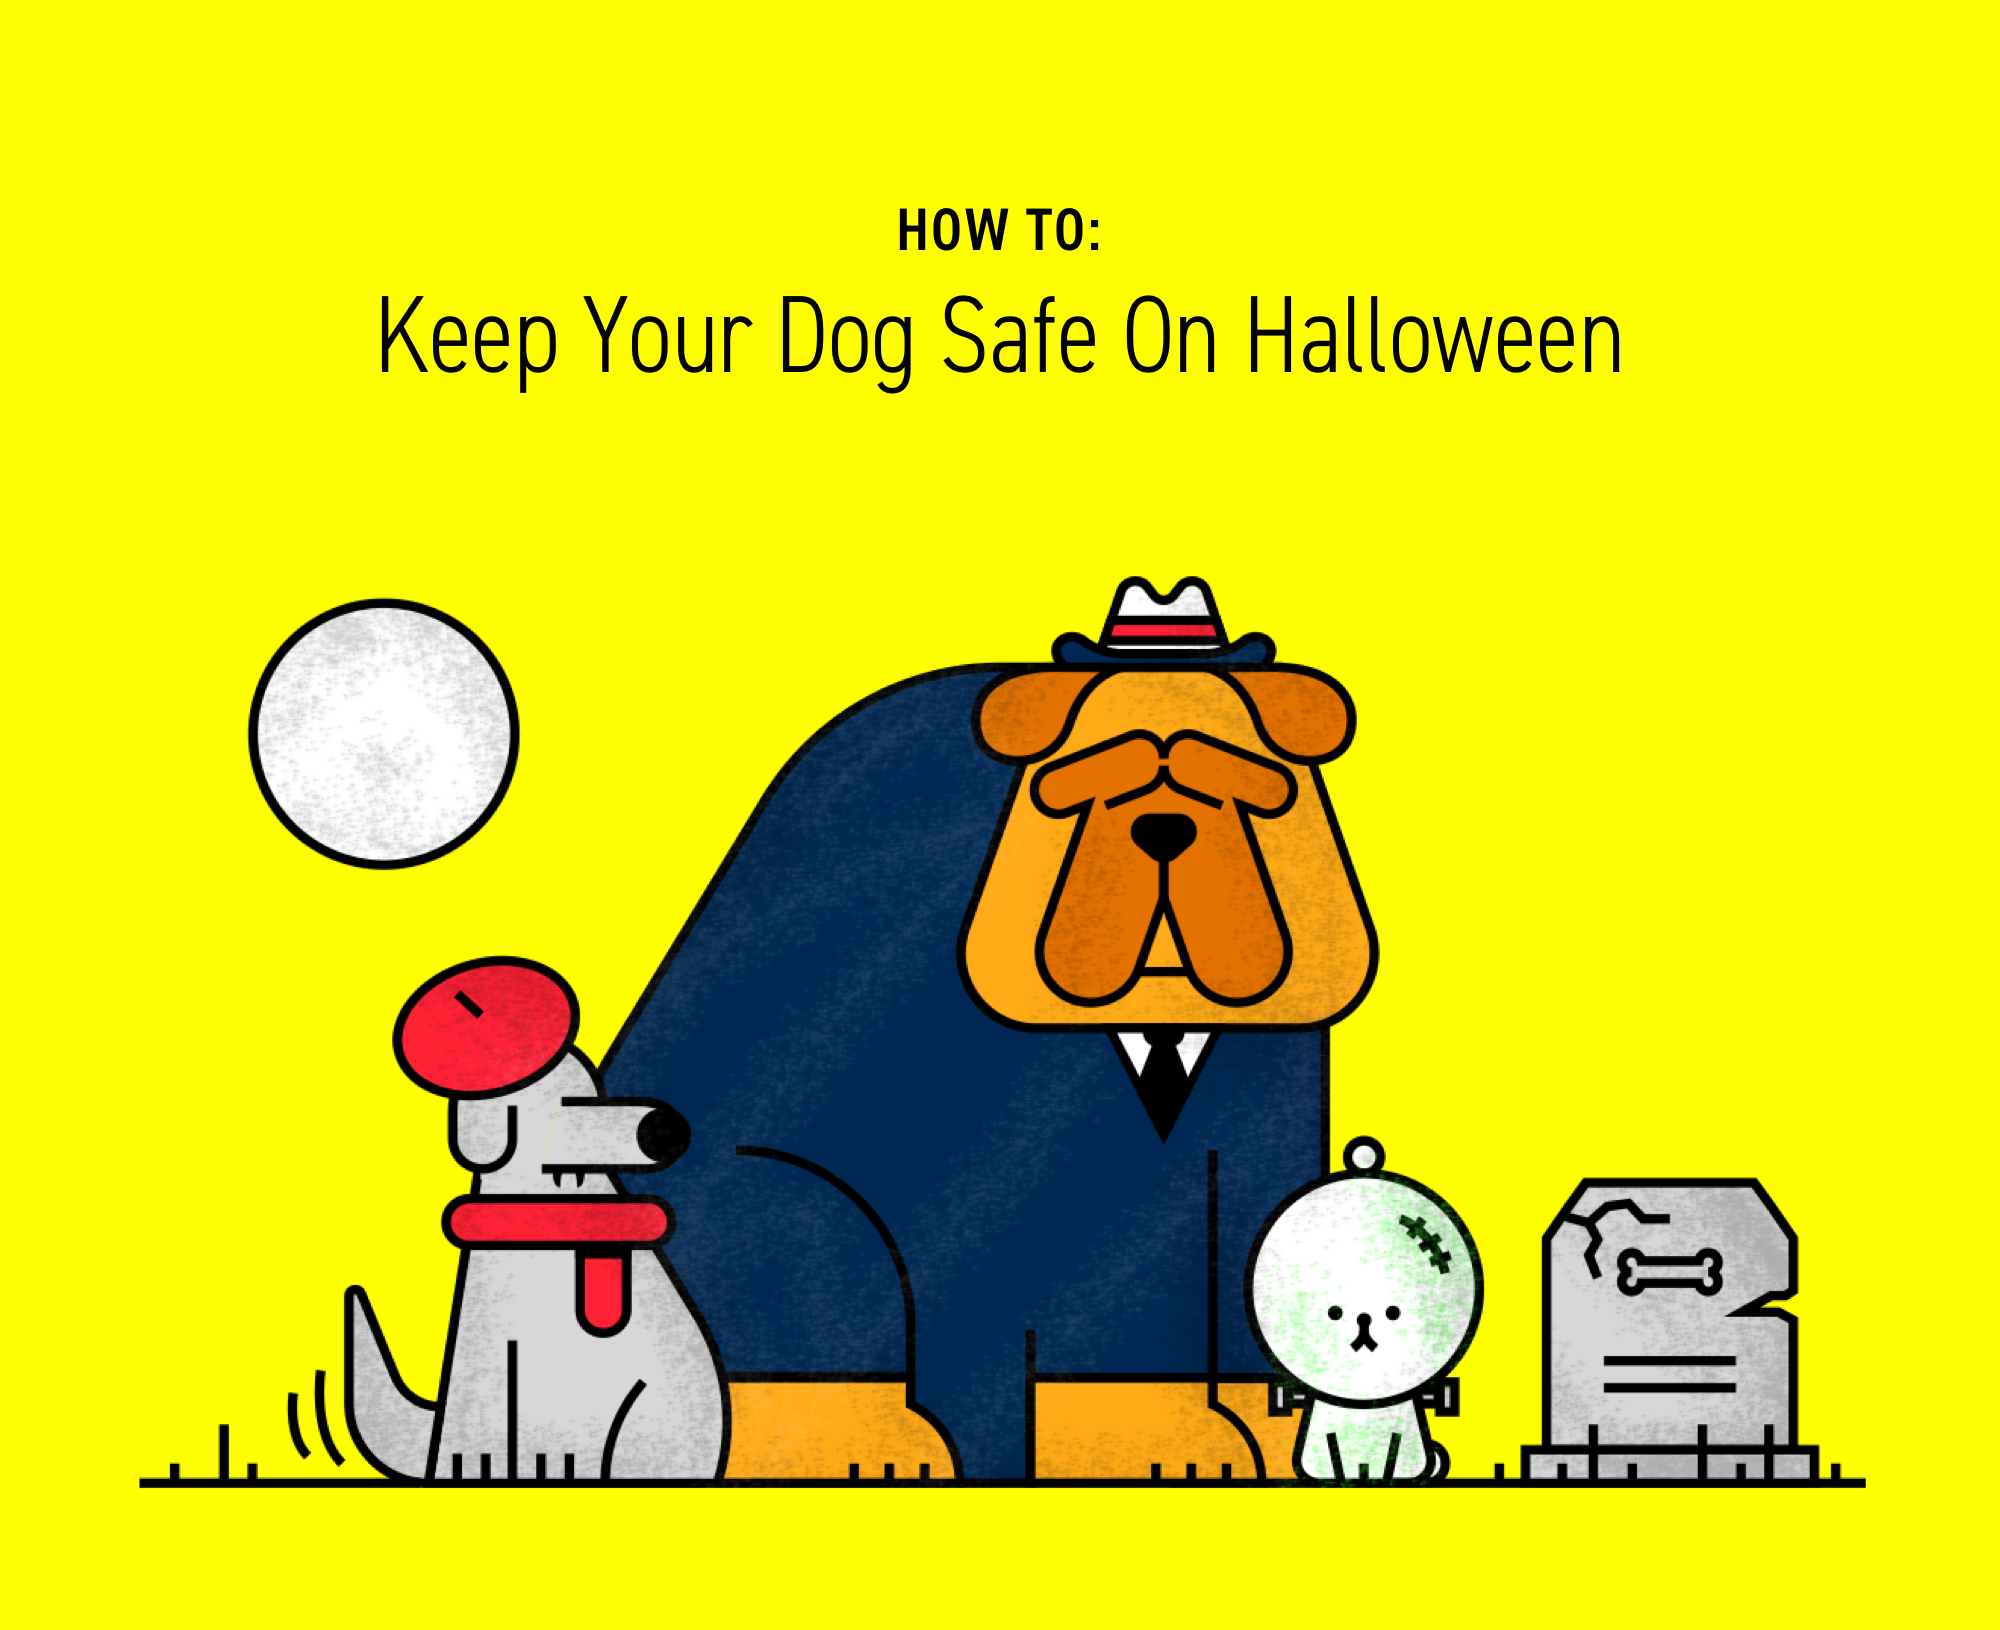 Ask Dr. Jeff: How Can I Keep My Dog Safe This Halloween?